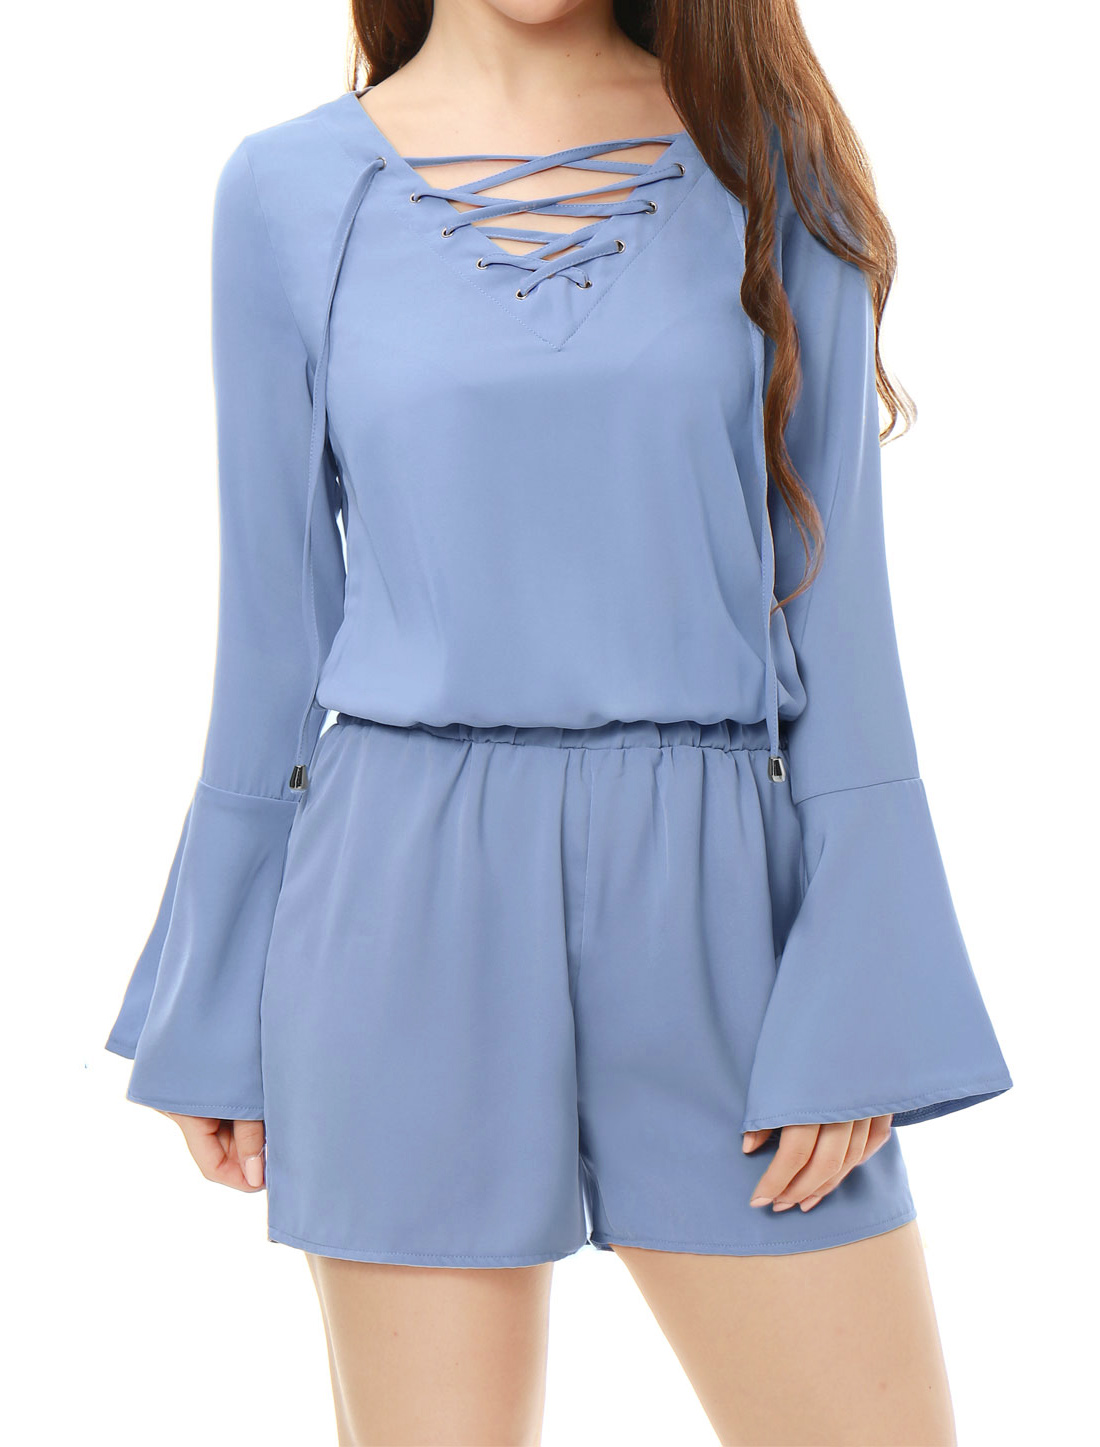 Women Flare Sleeves Crossover Back Lace Up Playsuit Blue S